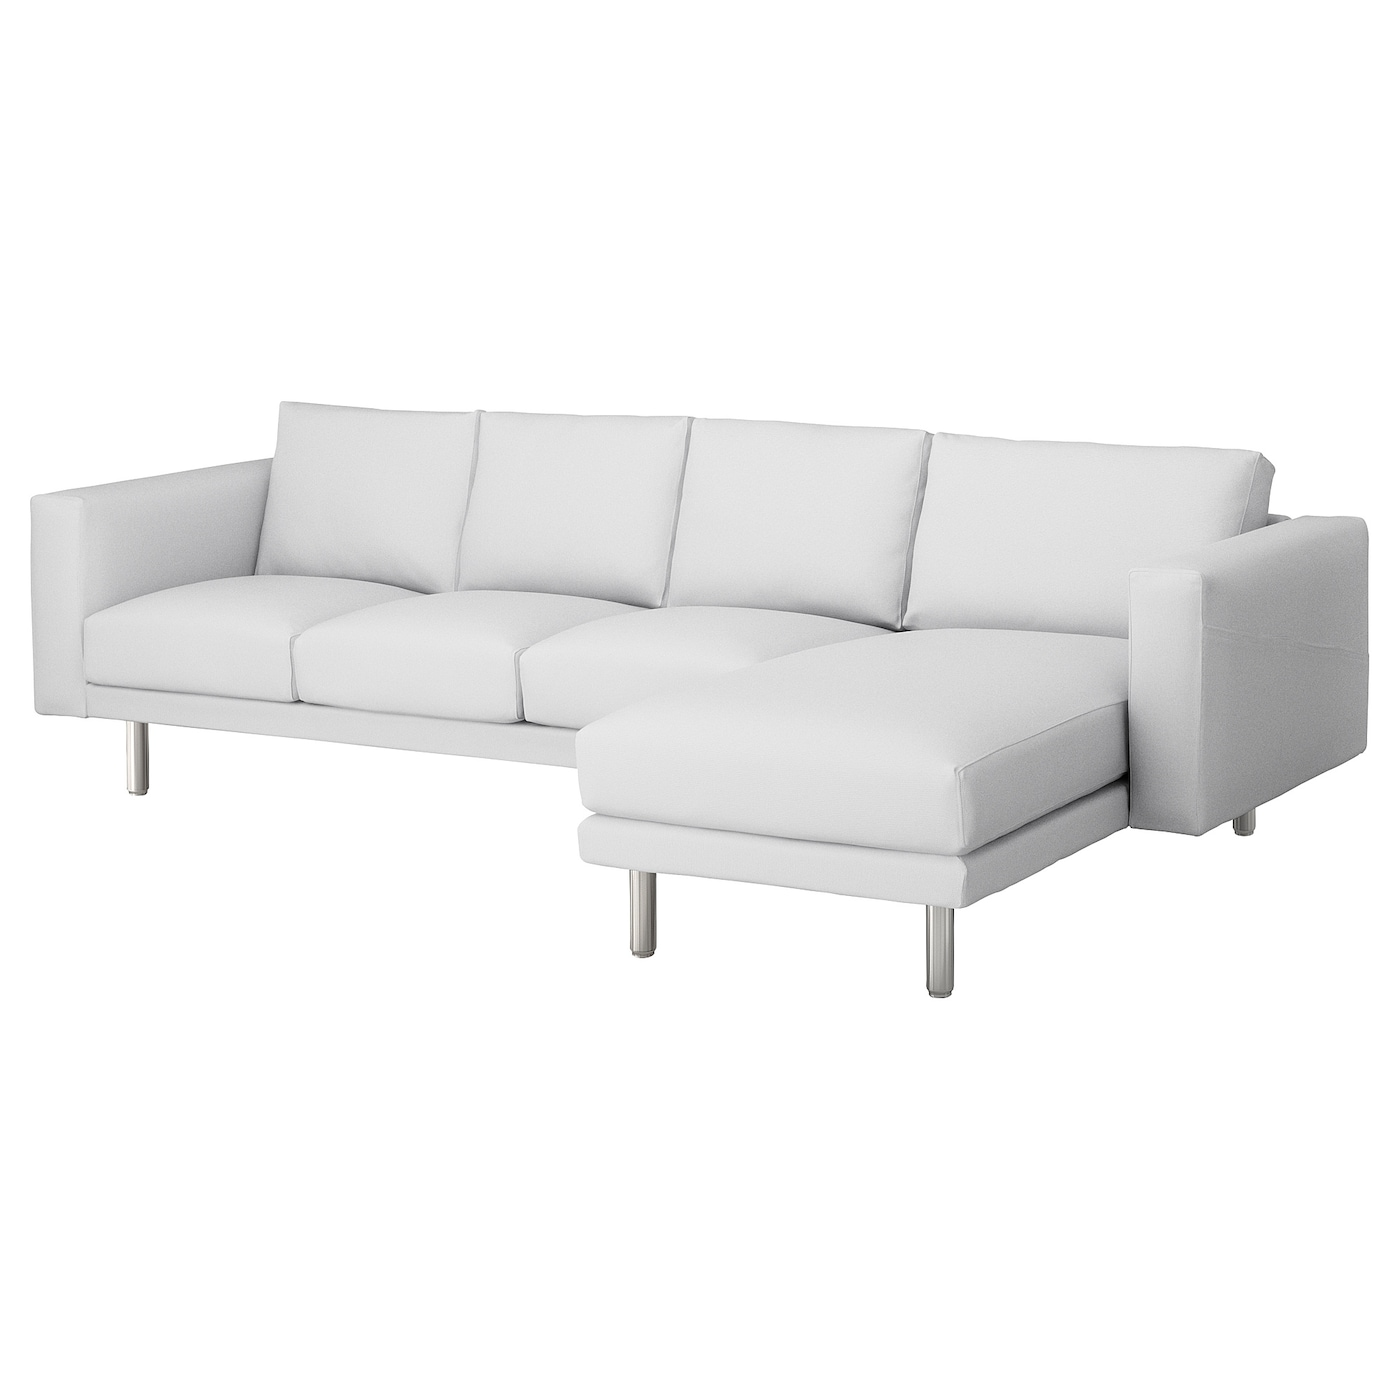 norsborg 4 seat sofa with chaise longue finnsta white. Black Bedroom Furniture Sets. Home Design Ideas